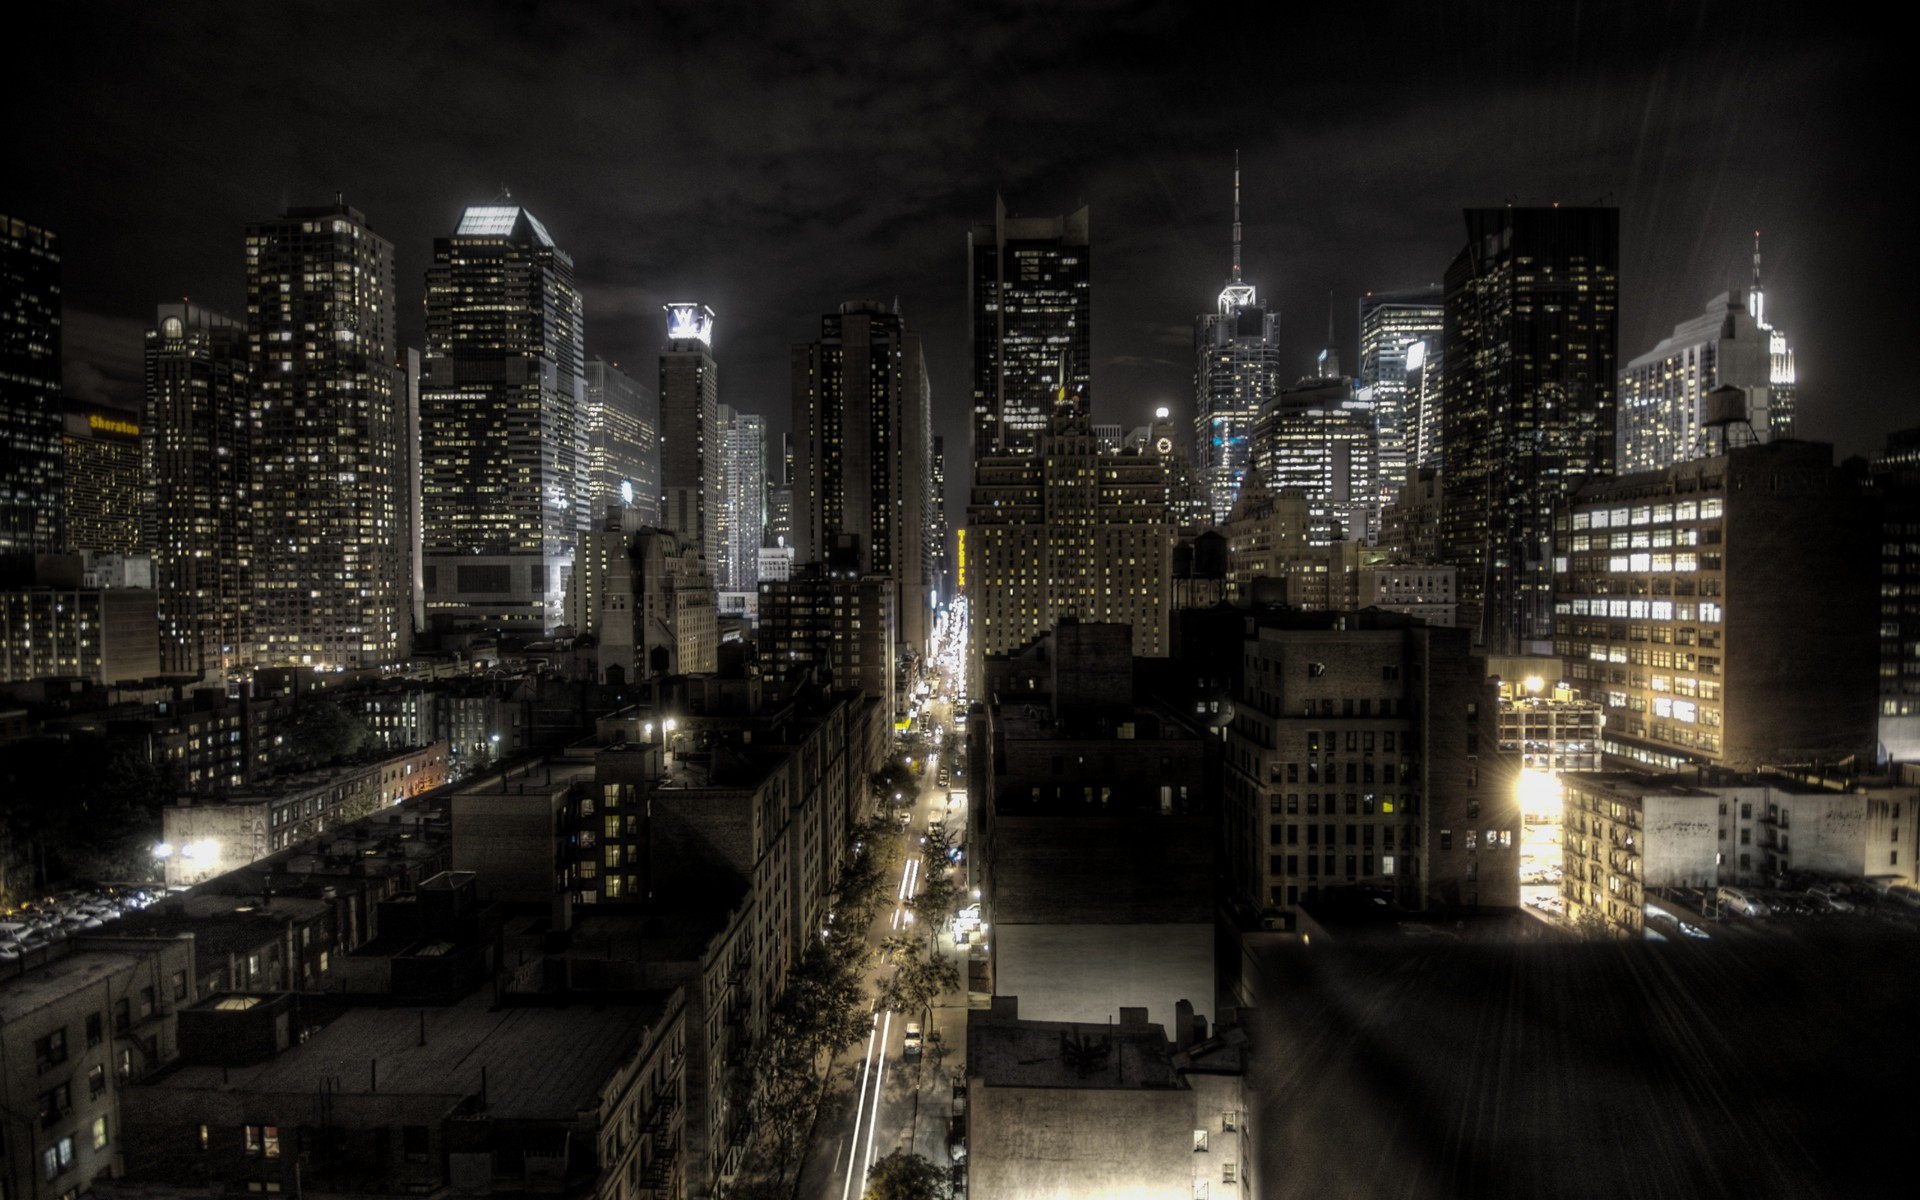 New york city lights cityscapes night wallpaper | AllWallpaper.in ... for City Lights At Night Wallpaper  584dqh